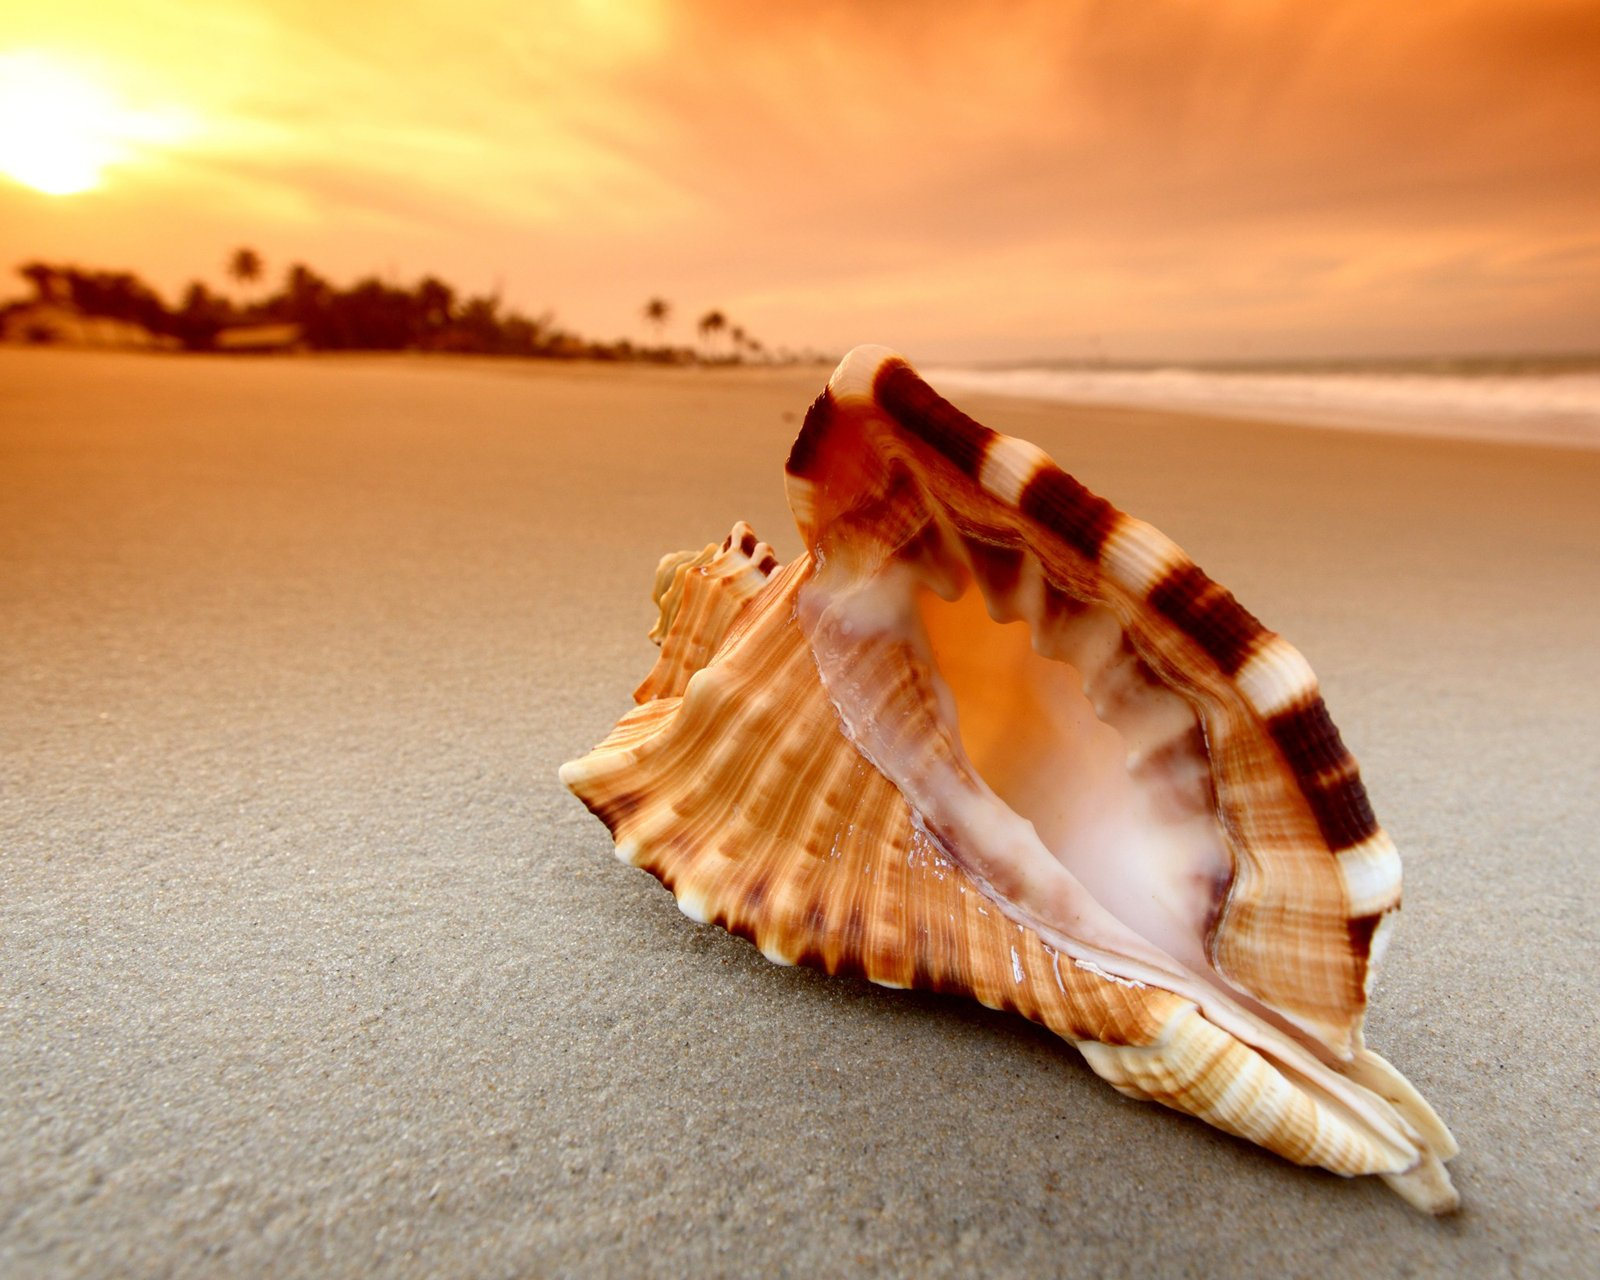 Shell Wallpaper HD 34309 1600x1280px 1600x1280